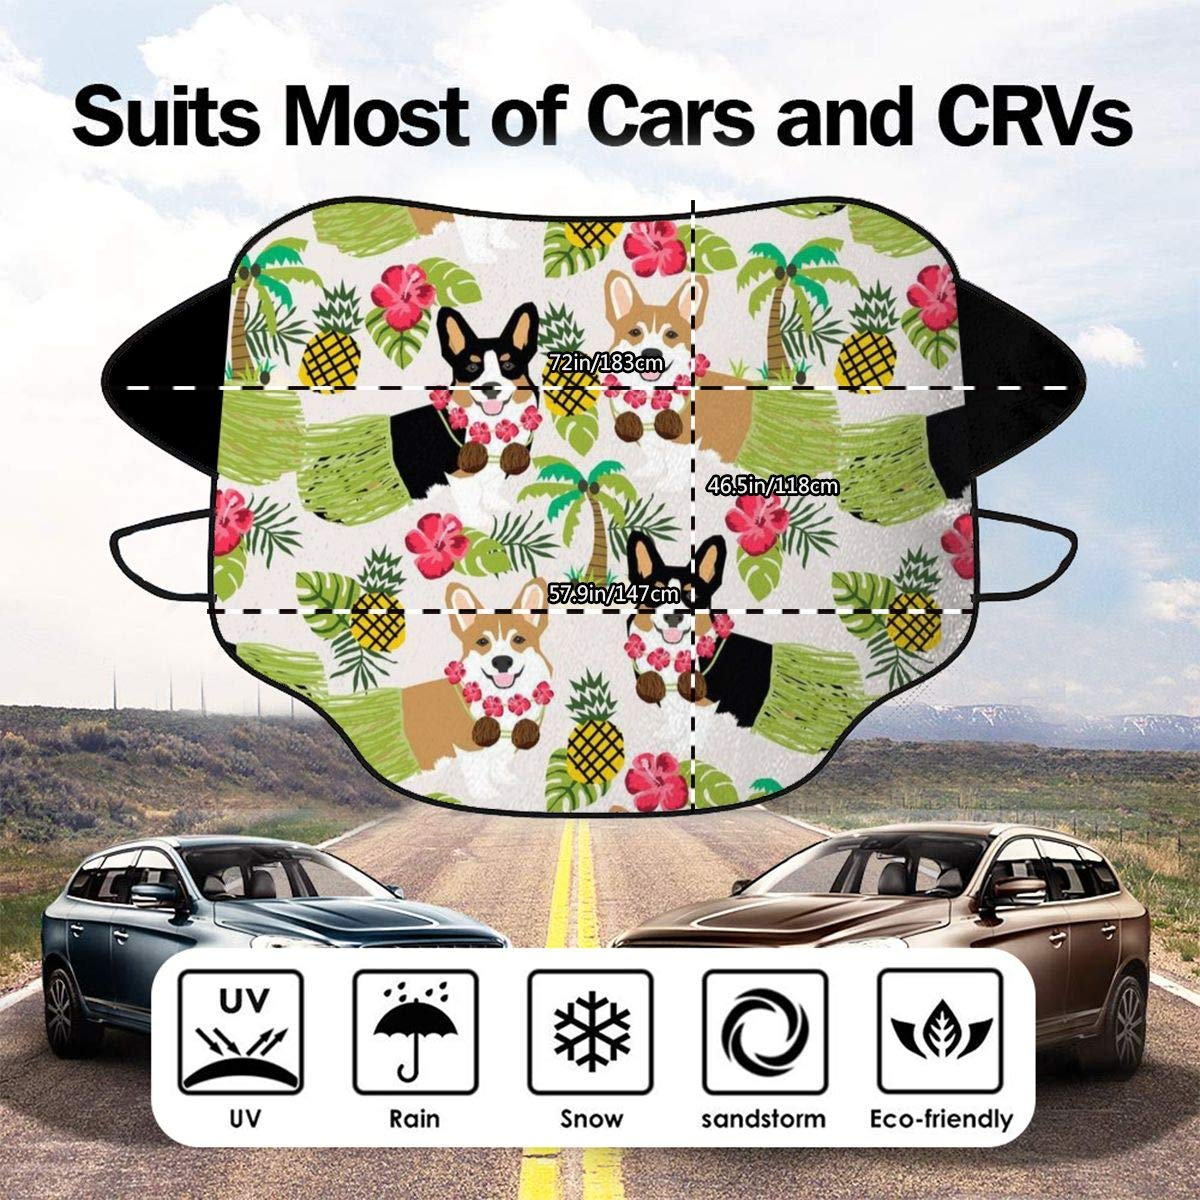 UV Sun and Heat Reflector Keep Your Vehicle Cool Jadetian I Elephant Alabama Car Windshield Foldable Sun Shade Universal for Cars SUV Truck